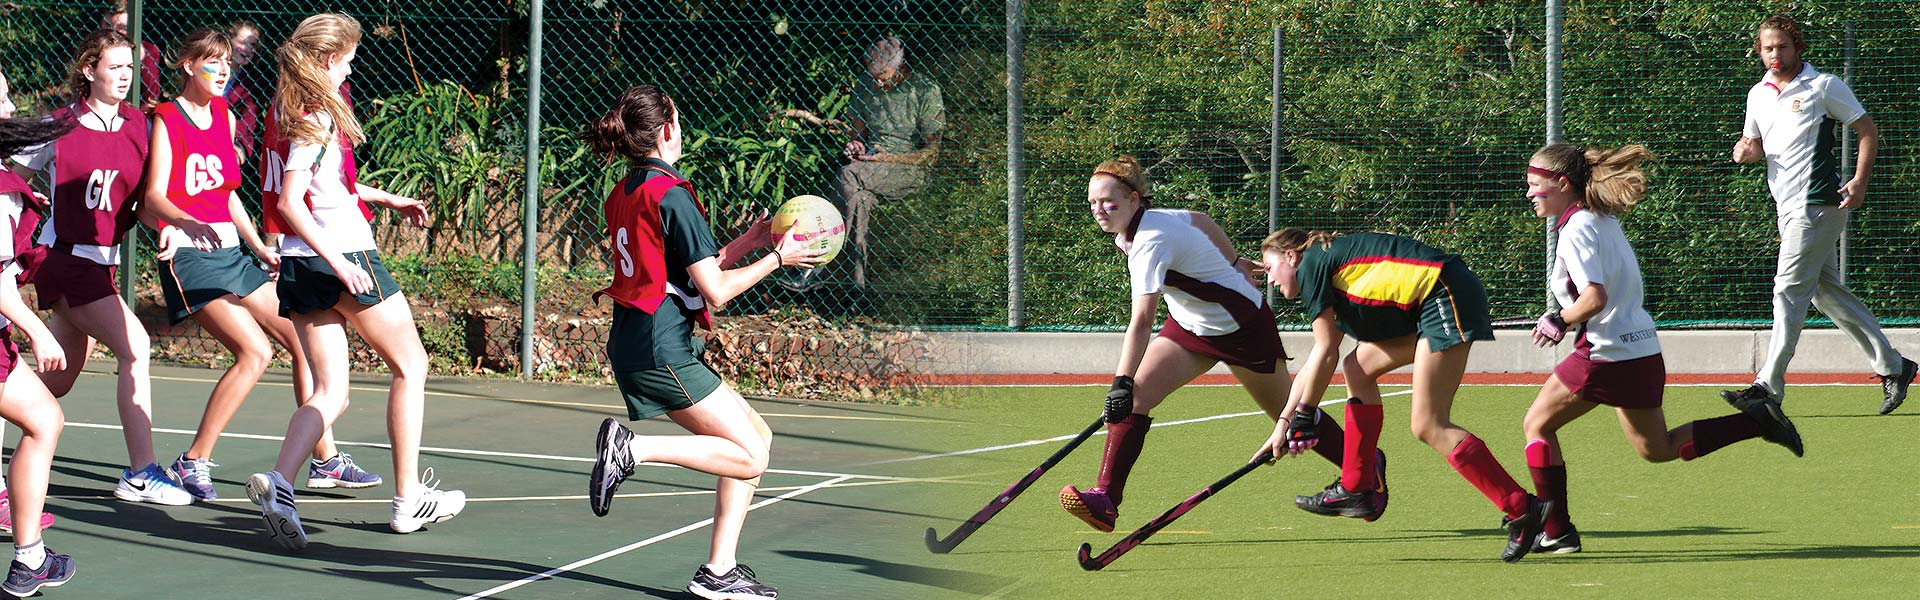 Camps Bay High School - Netball & hockey